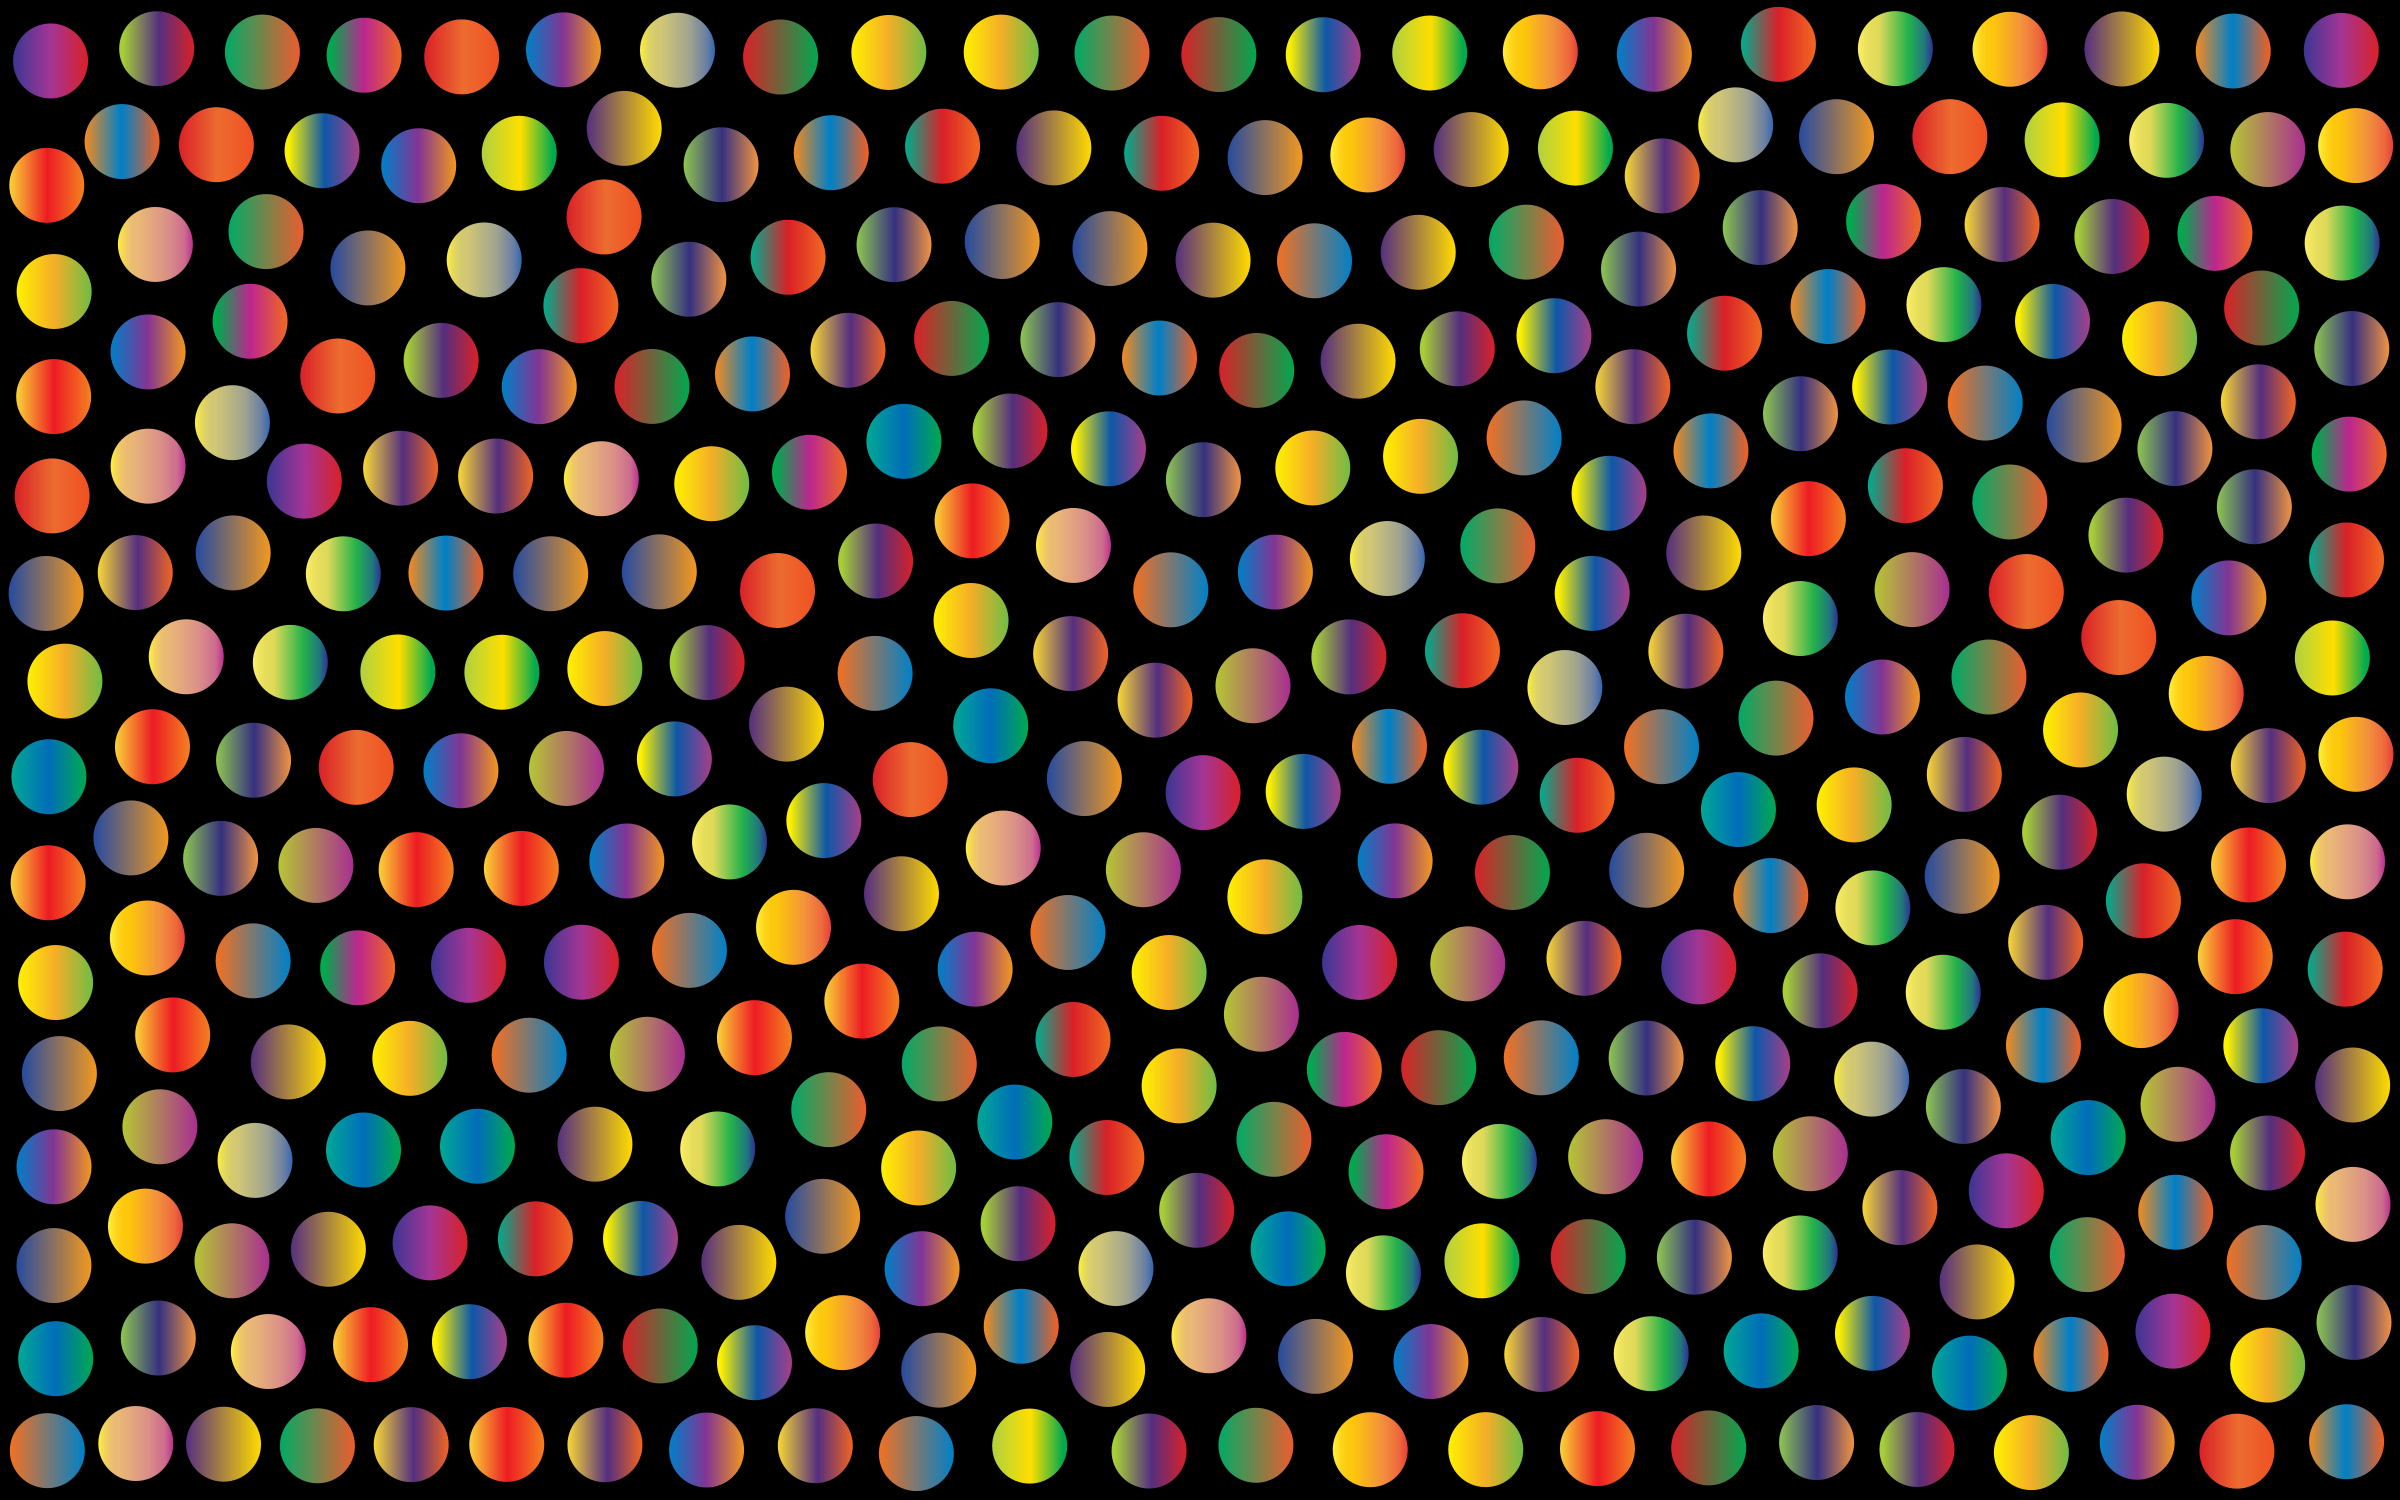 Prismatic Dots Background 5 by GDJ